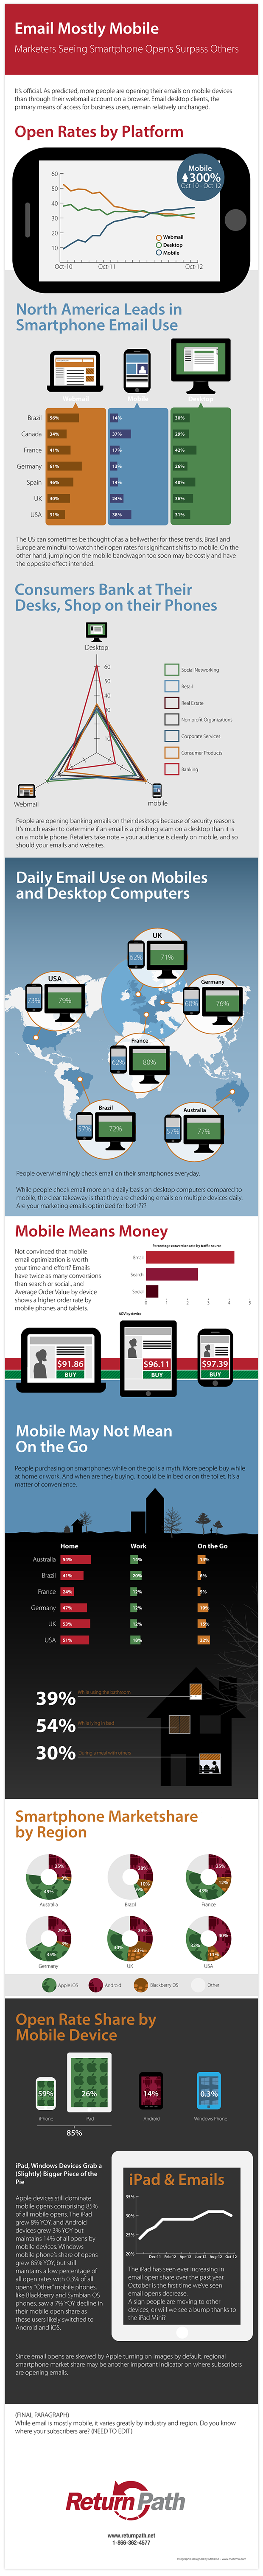 RP_MobileInfographic